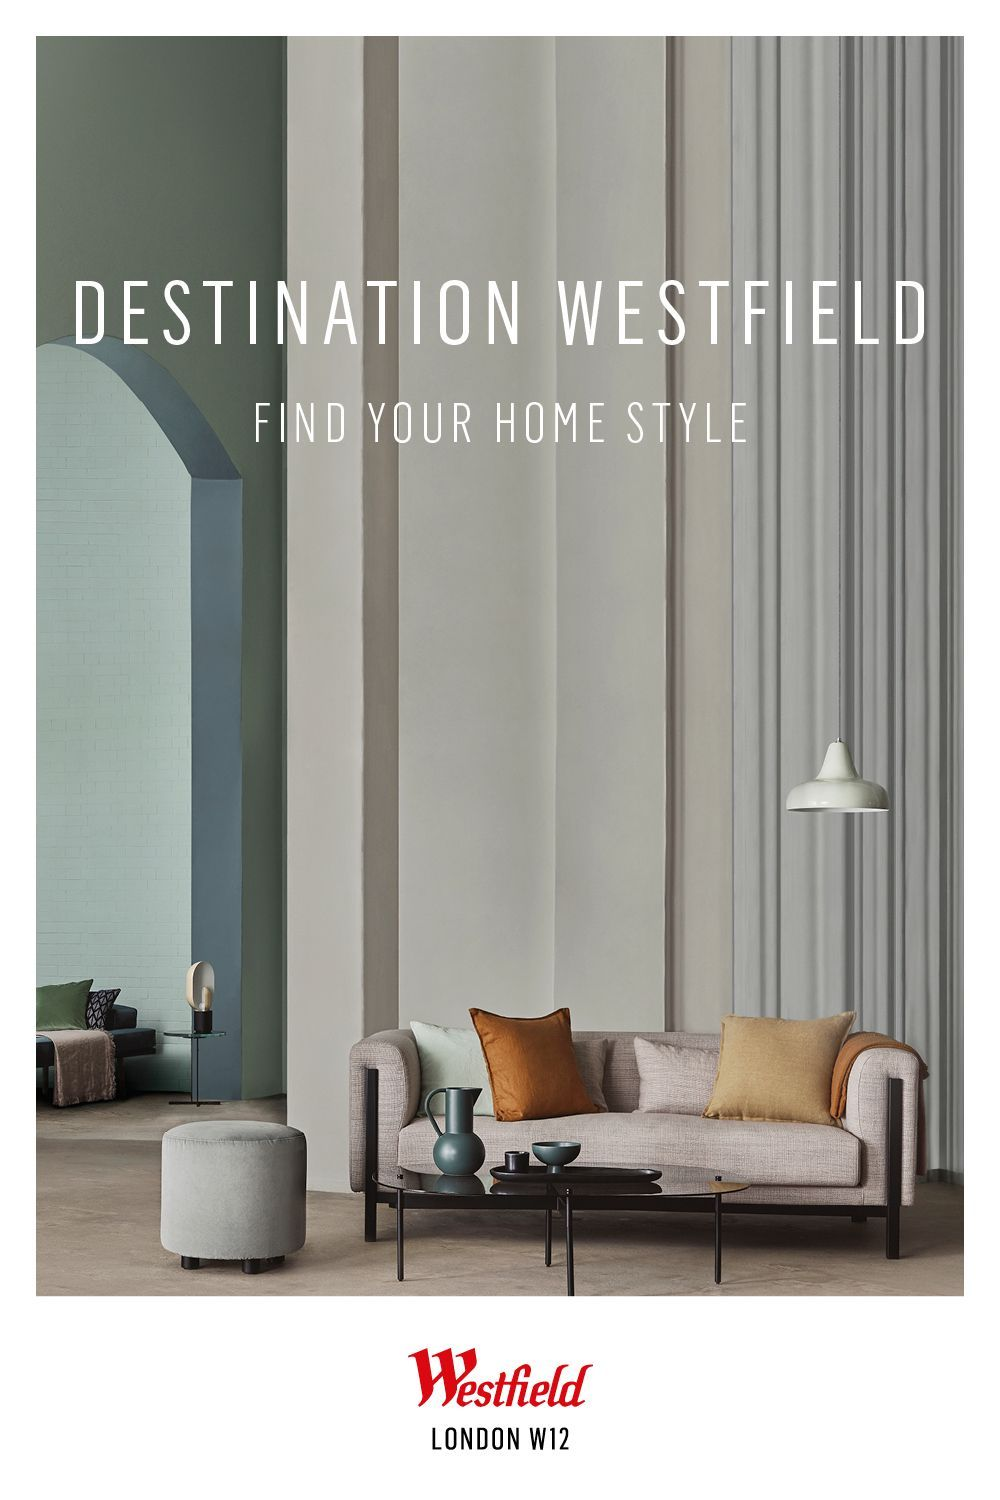 Discover your home style with Westfield. Find furniture